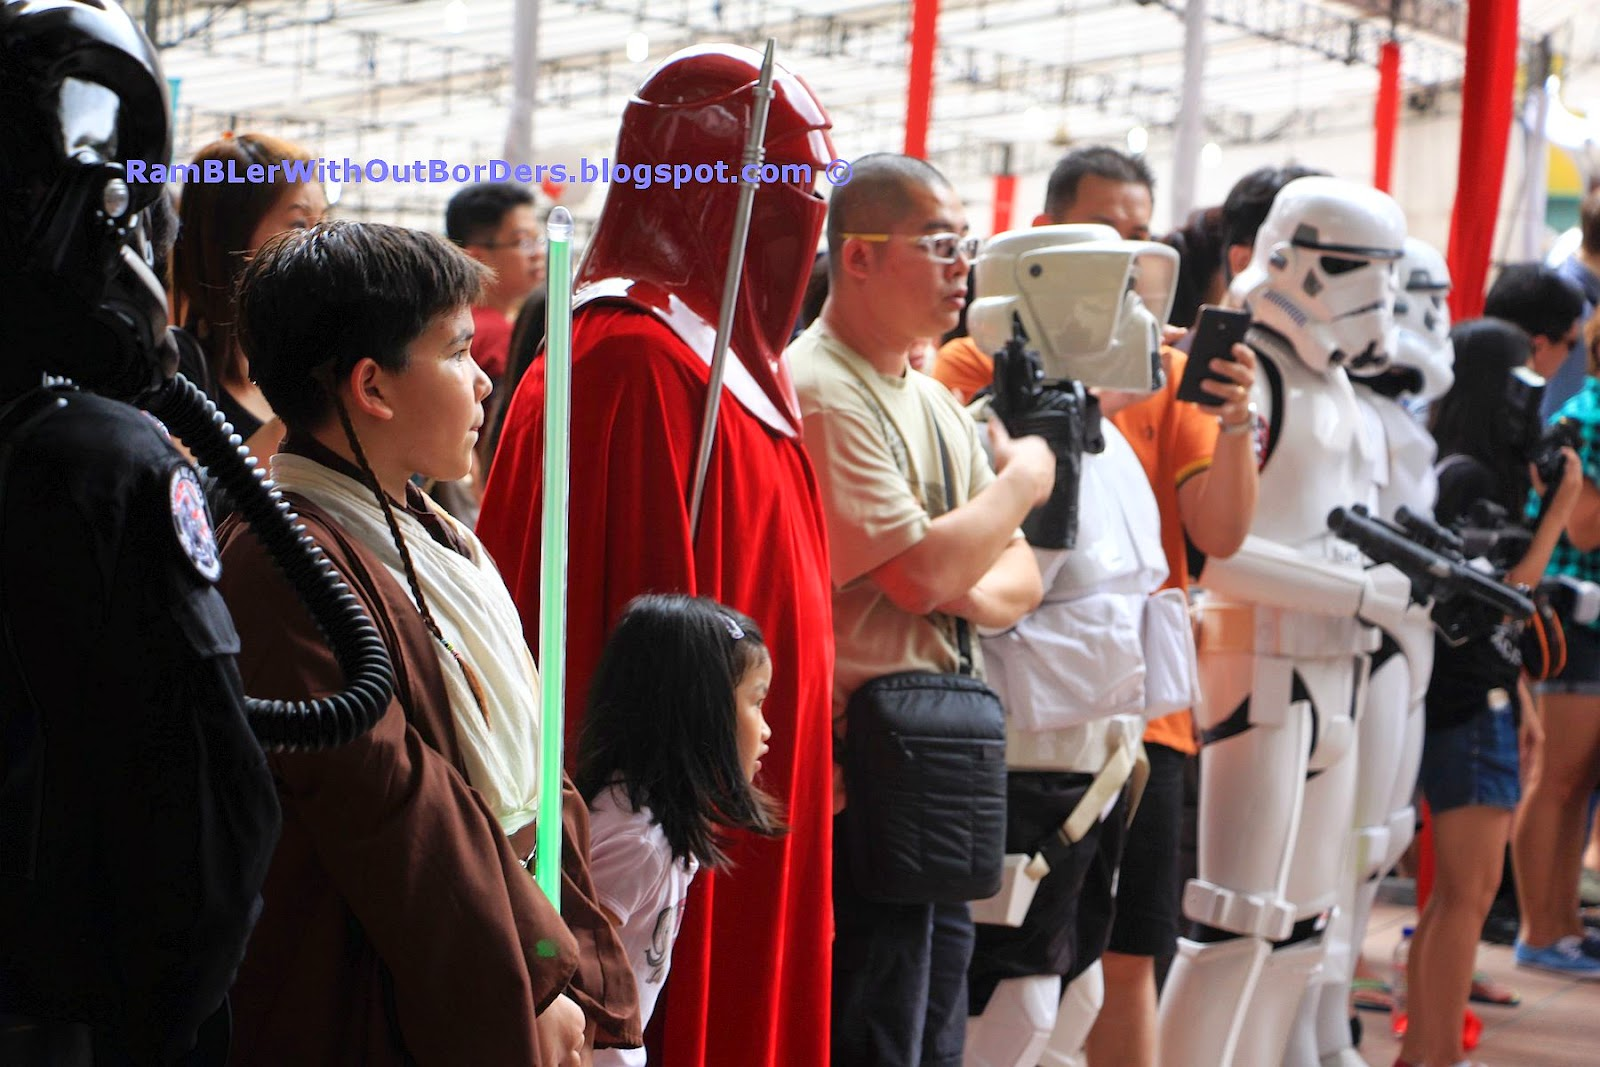 Star Wars characters Reception, Singapore International Red Cross Bazaar 2015